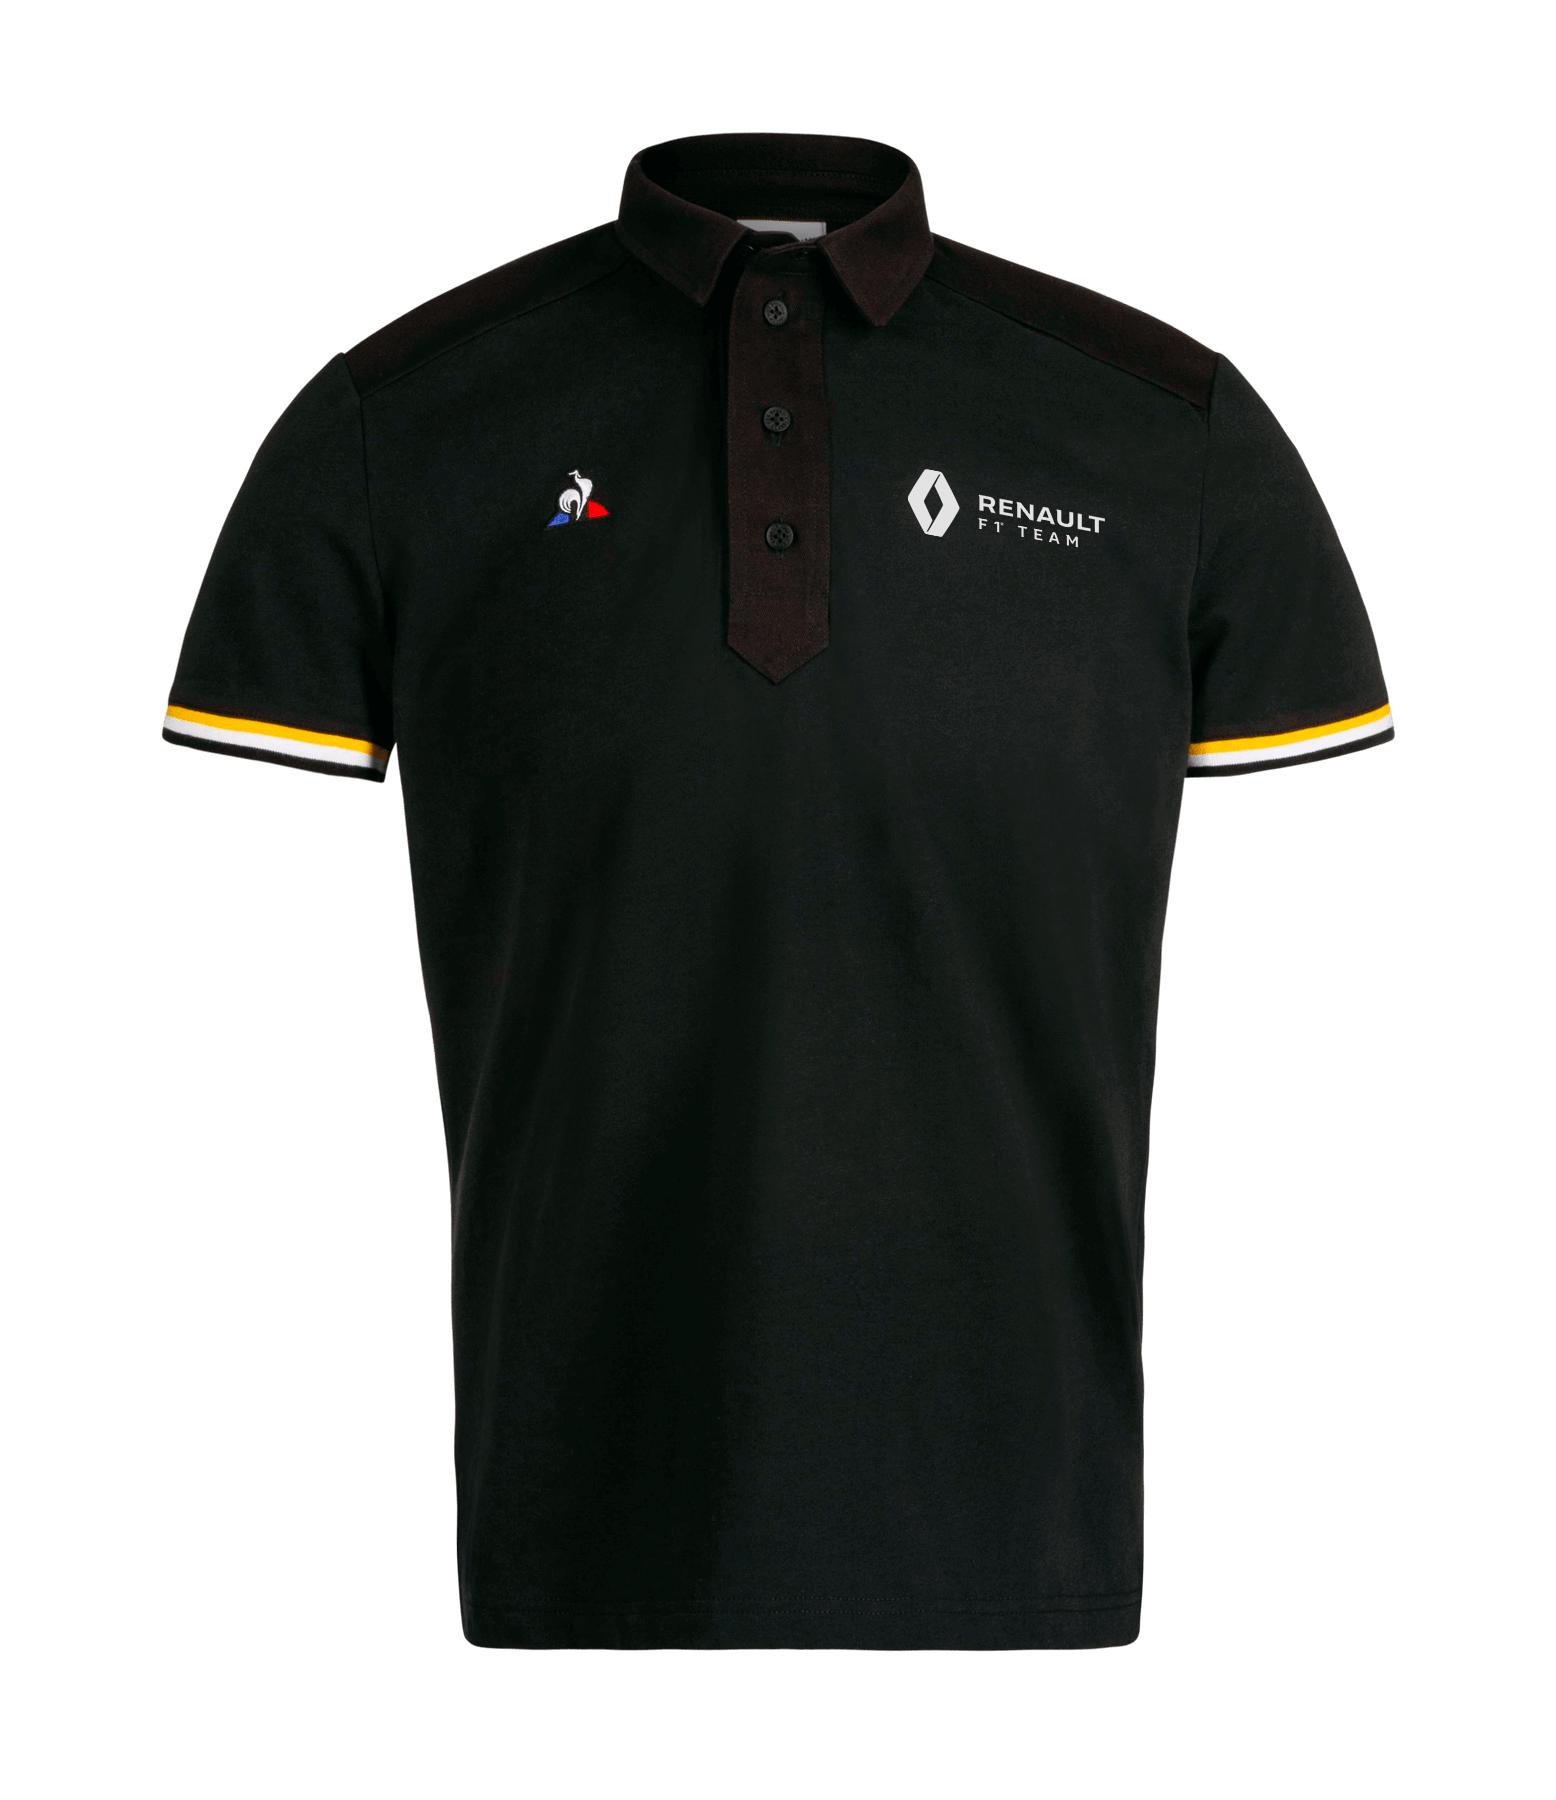 RENAULT F1® TEAM fan men's polo shirt - black